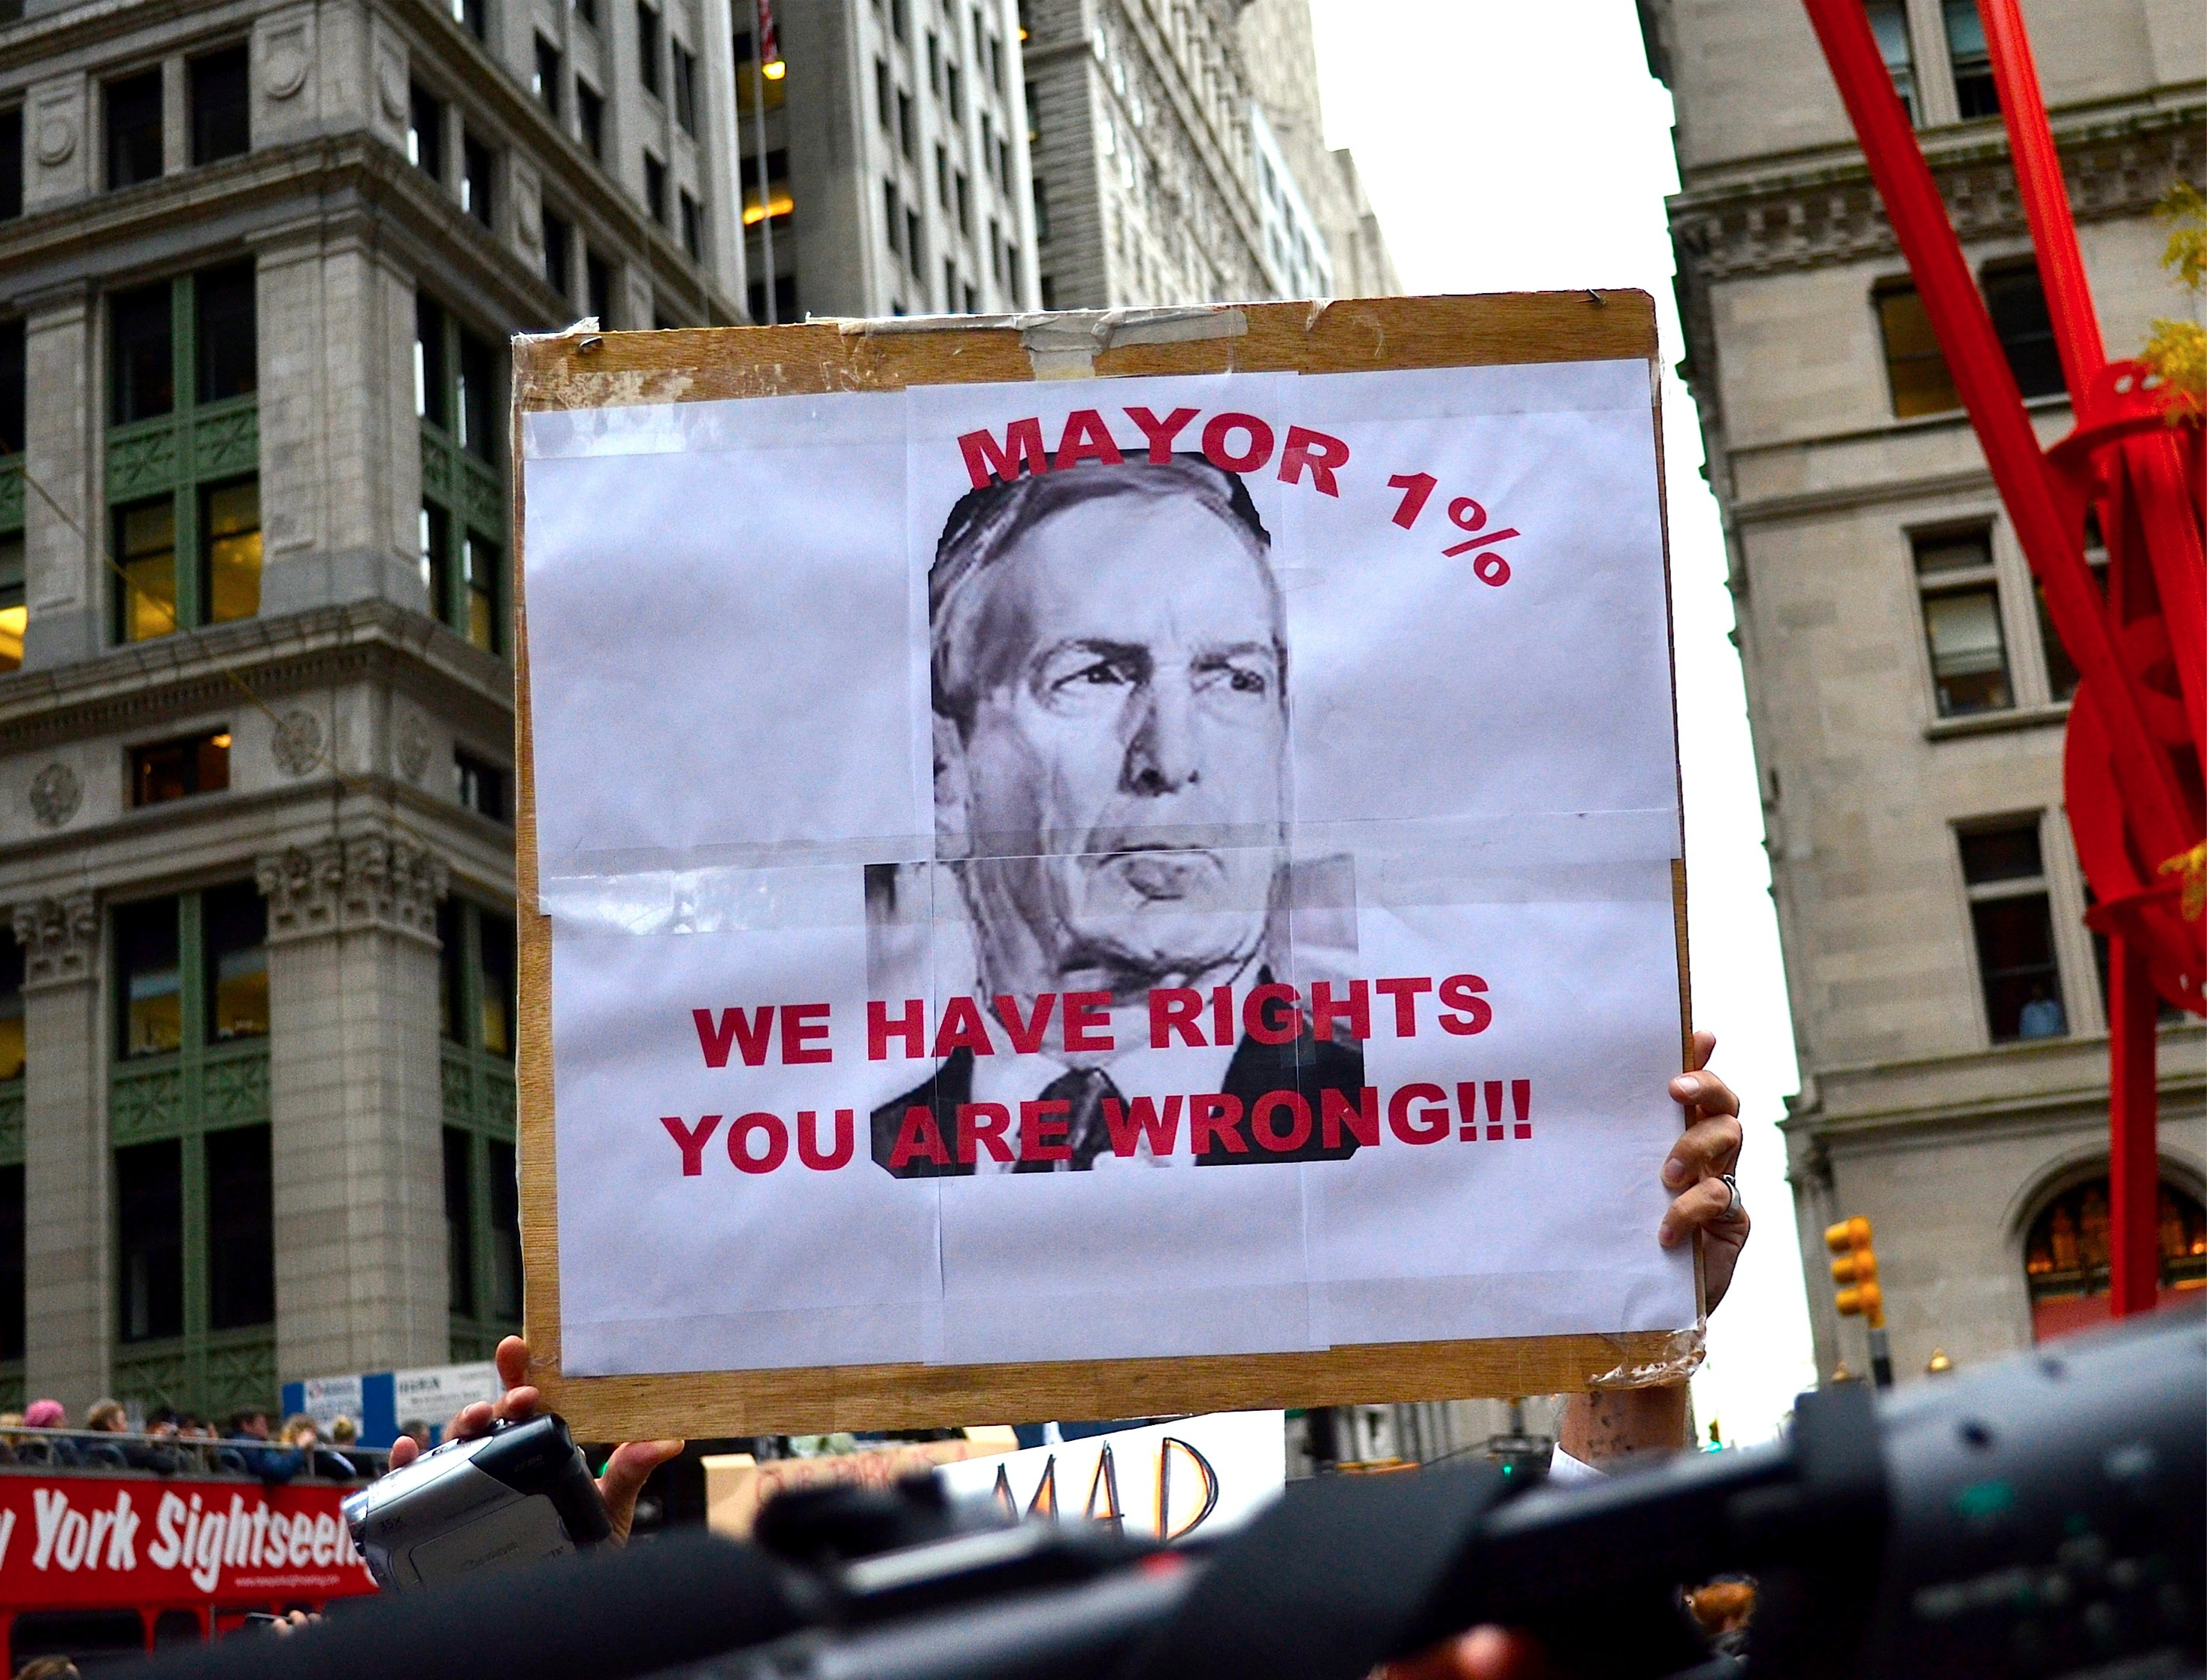 occupy wall street essay conclusion The occupy wall street movement started from young protestors growing tired of high student loans and low grossing wages the movement had moral and economic implications.